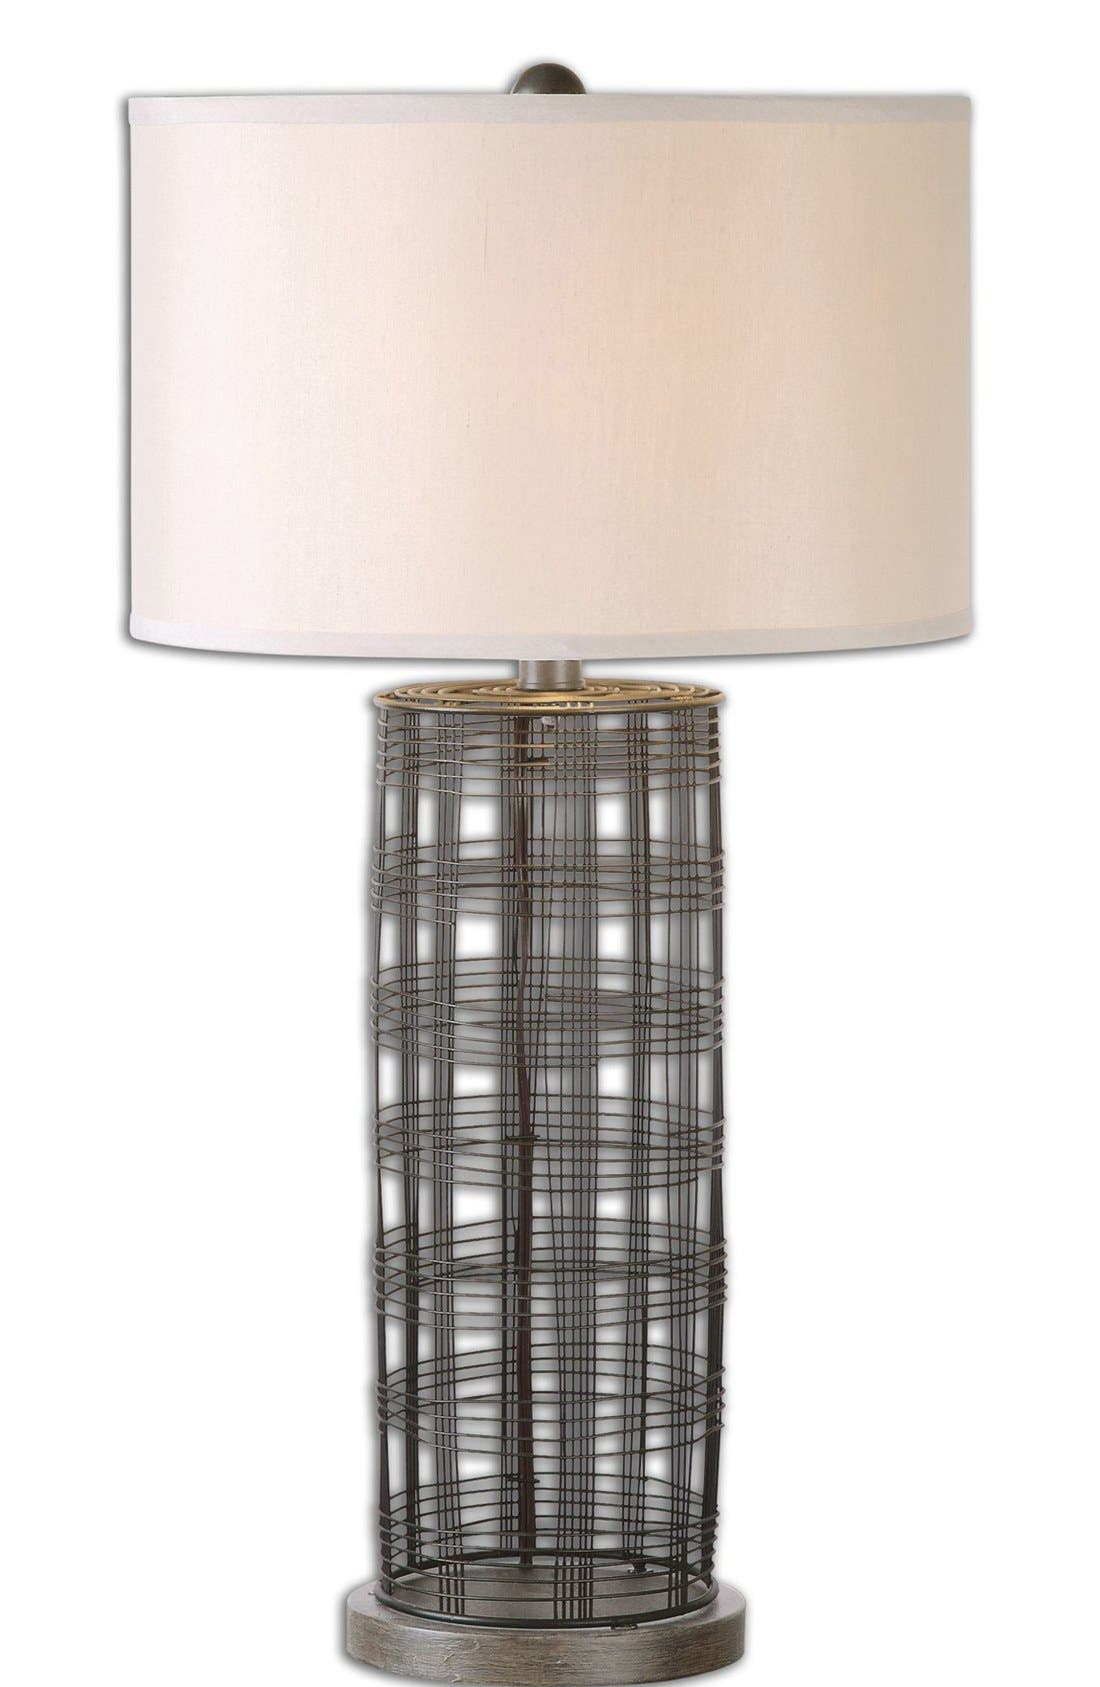 Alternate Image 1 Selected - Uttermost 'Engel' Wire Table Lamp